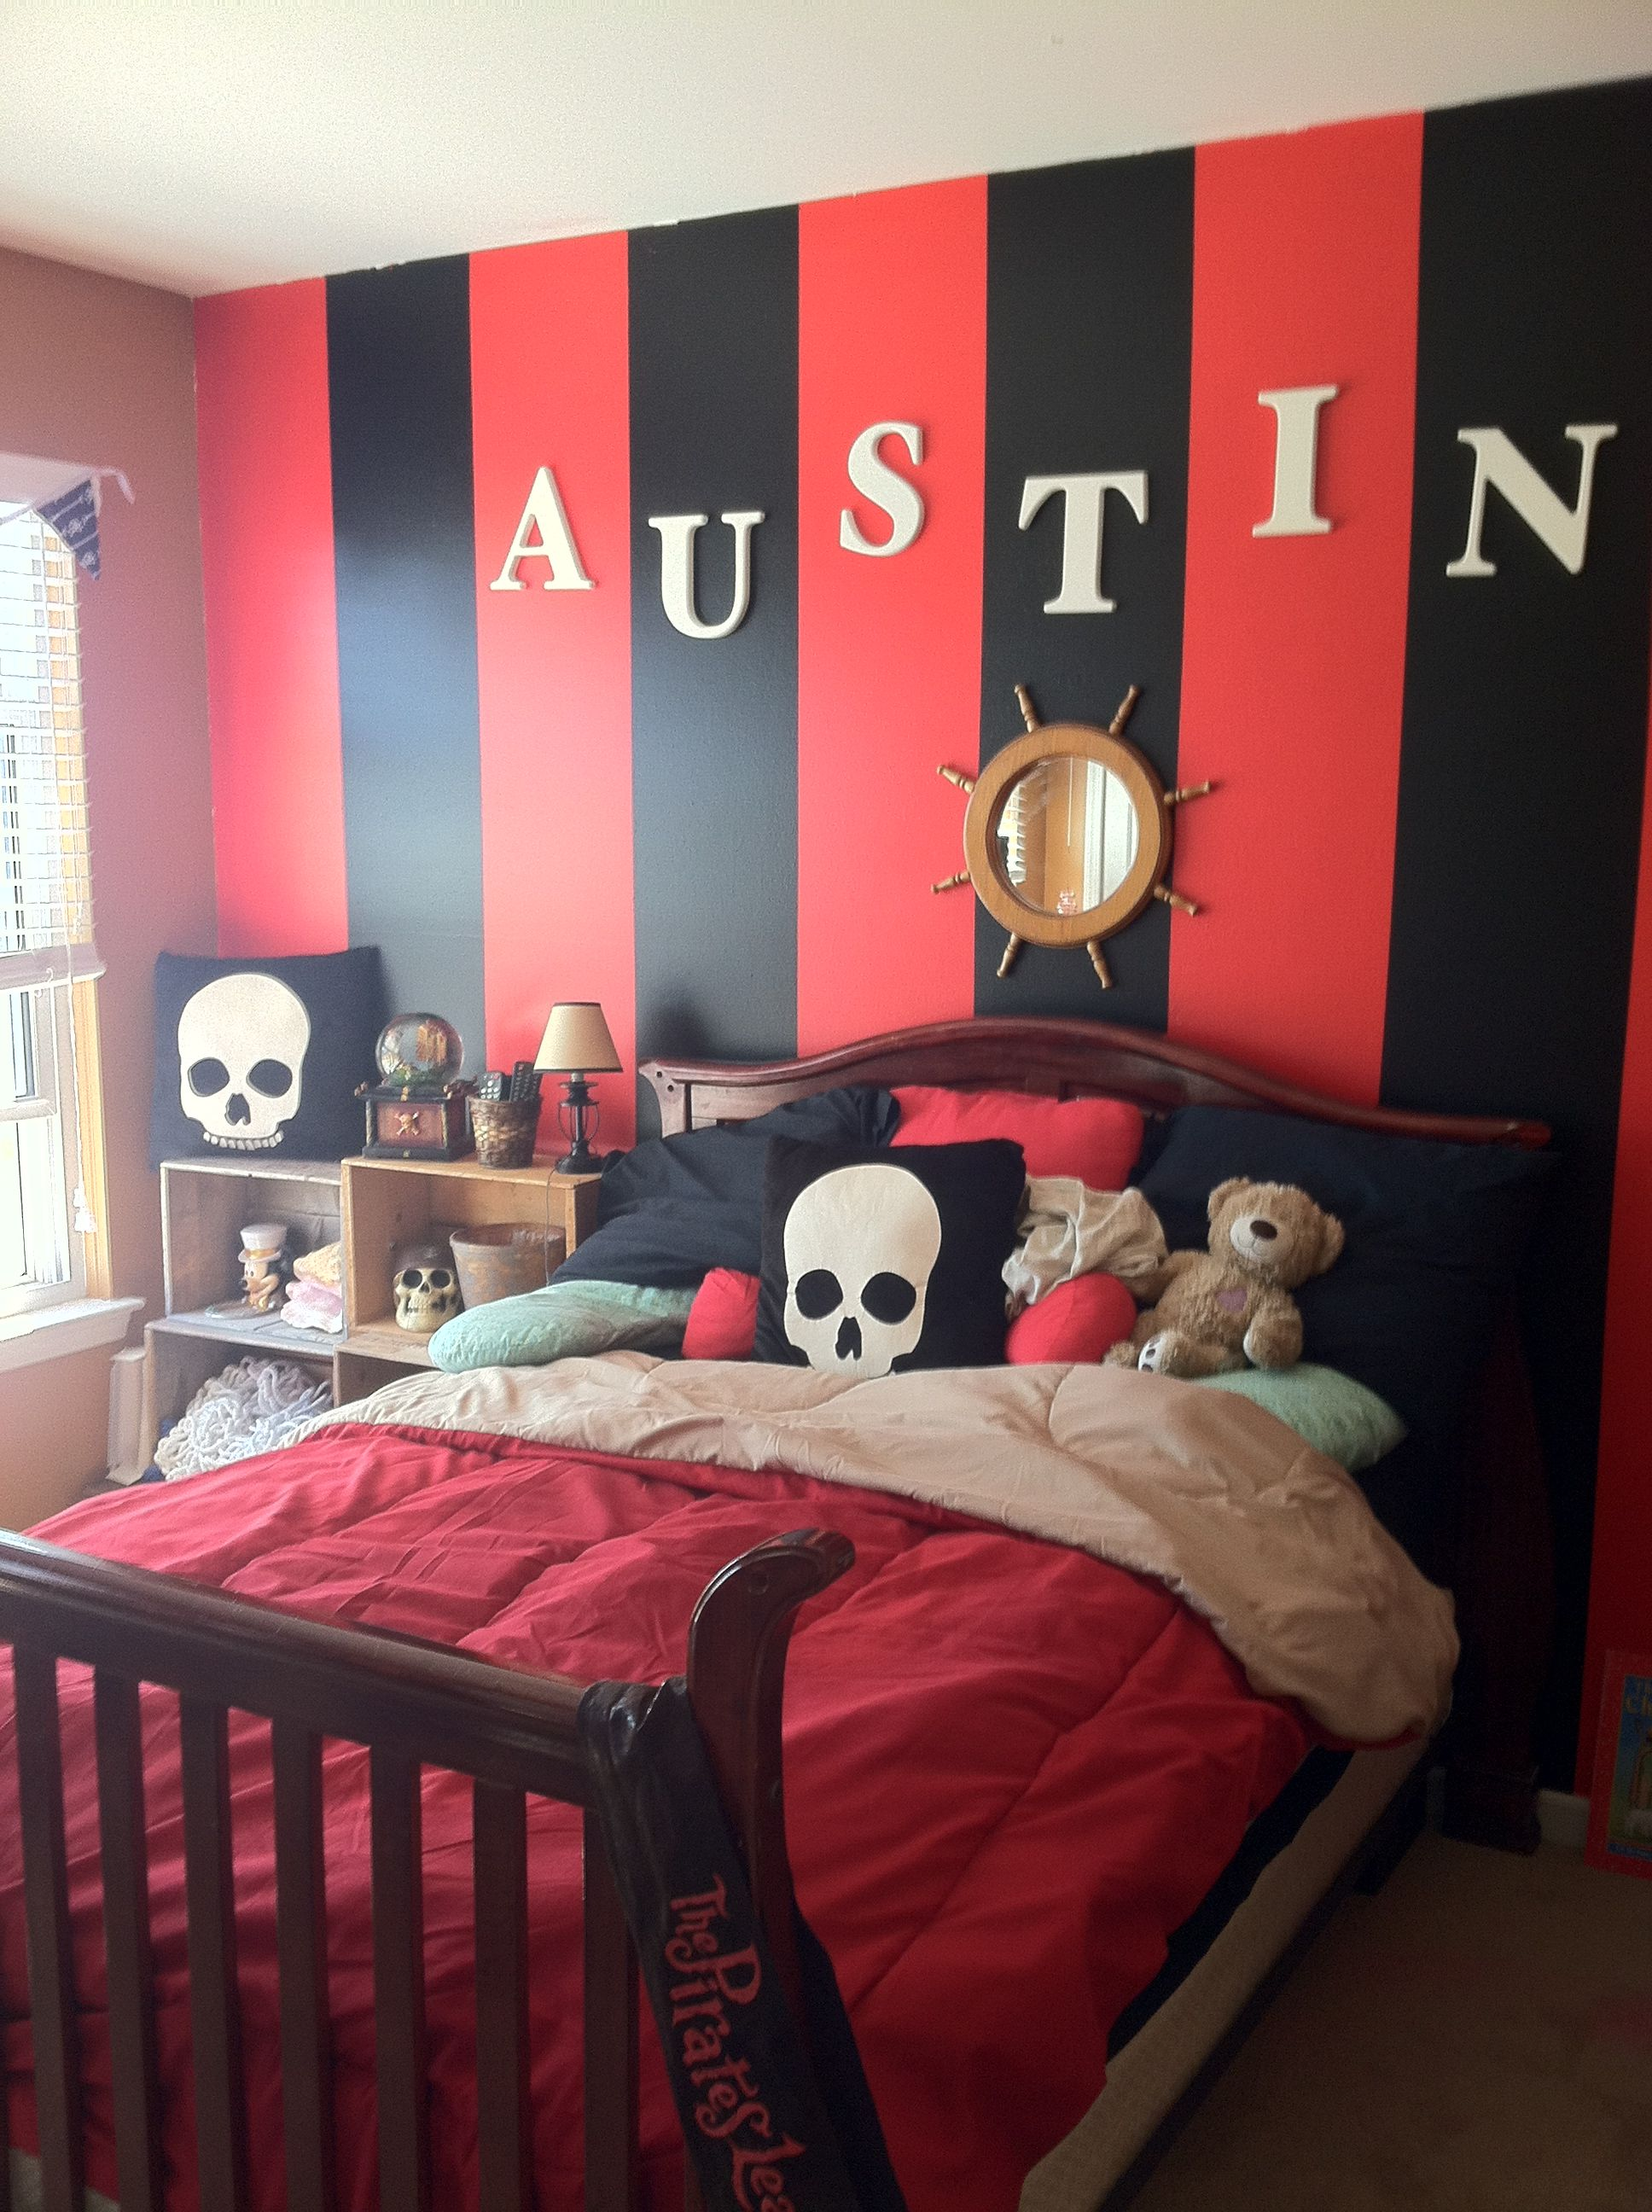 The Wall In Austin S Pirate Bedroom It Is Red And Black